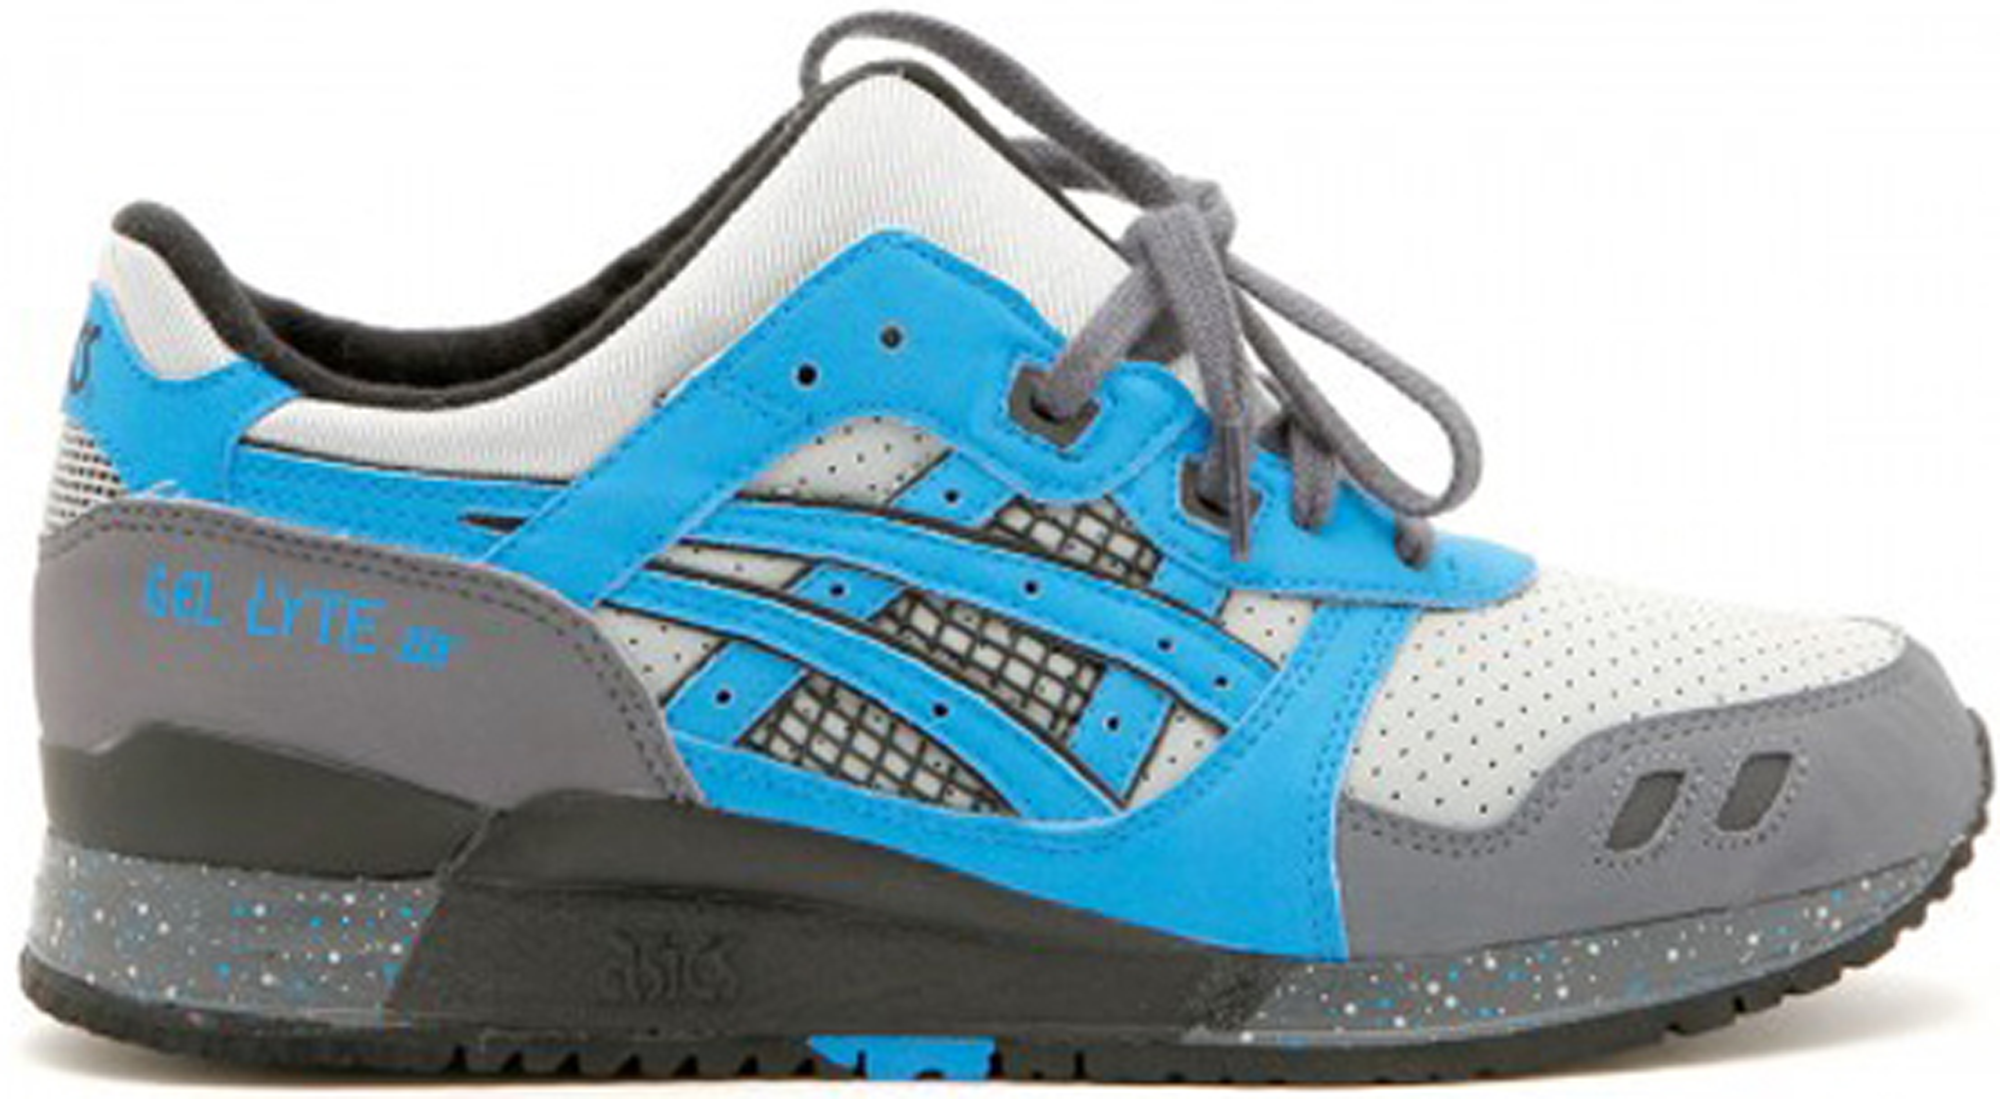 ASICS Gel-Lyte III David Z x Ronnie Fieg Super Blue